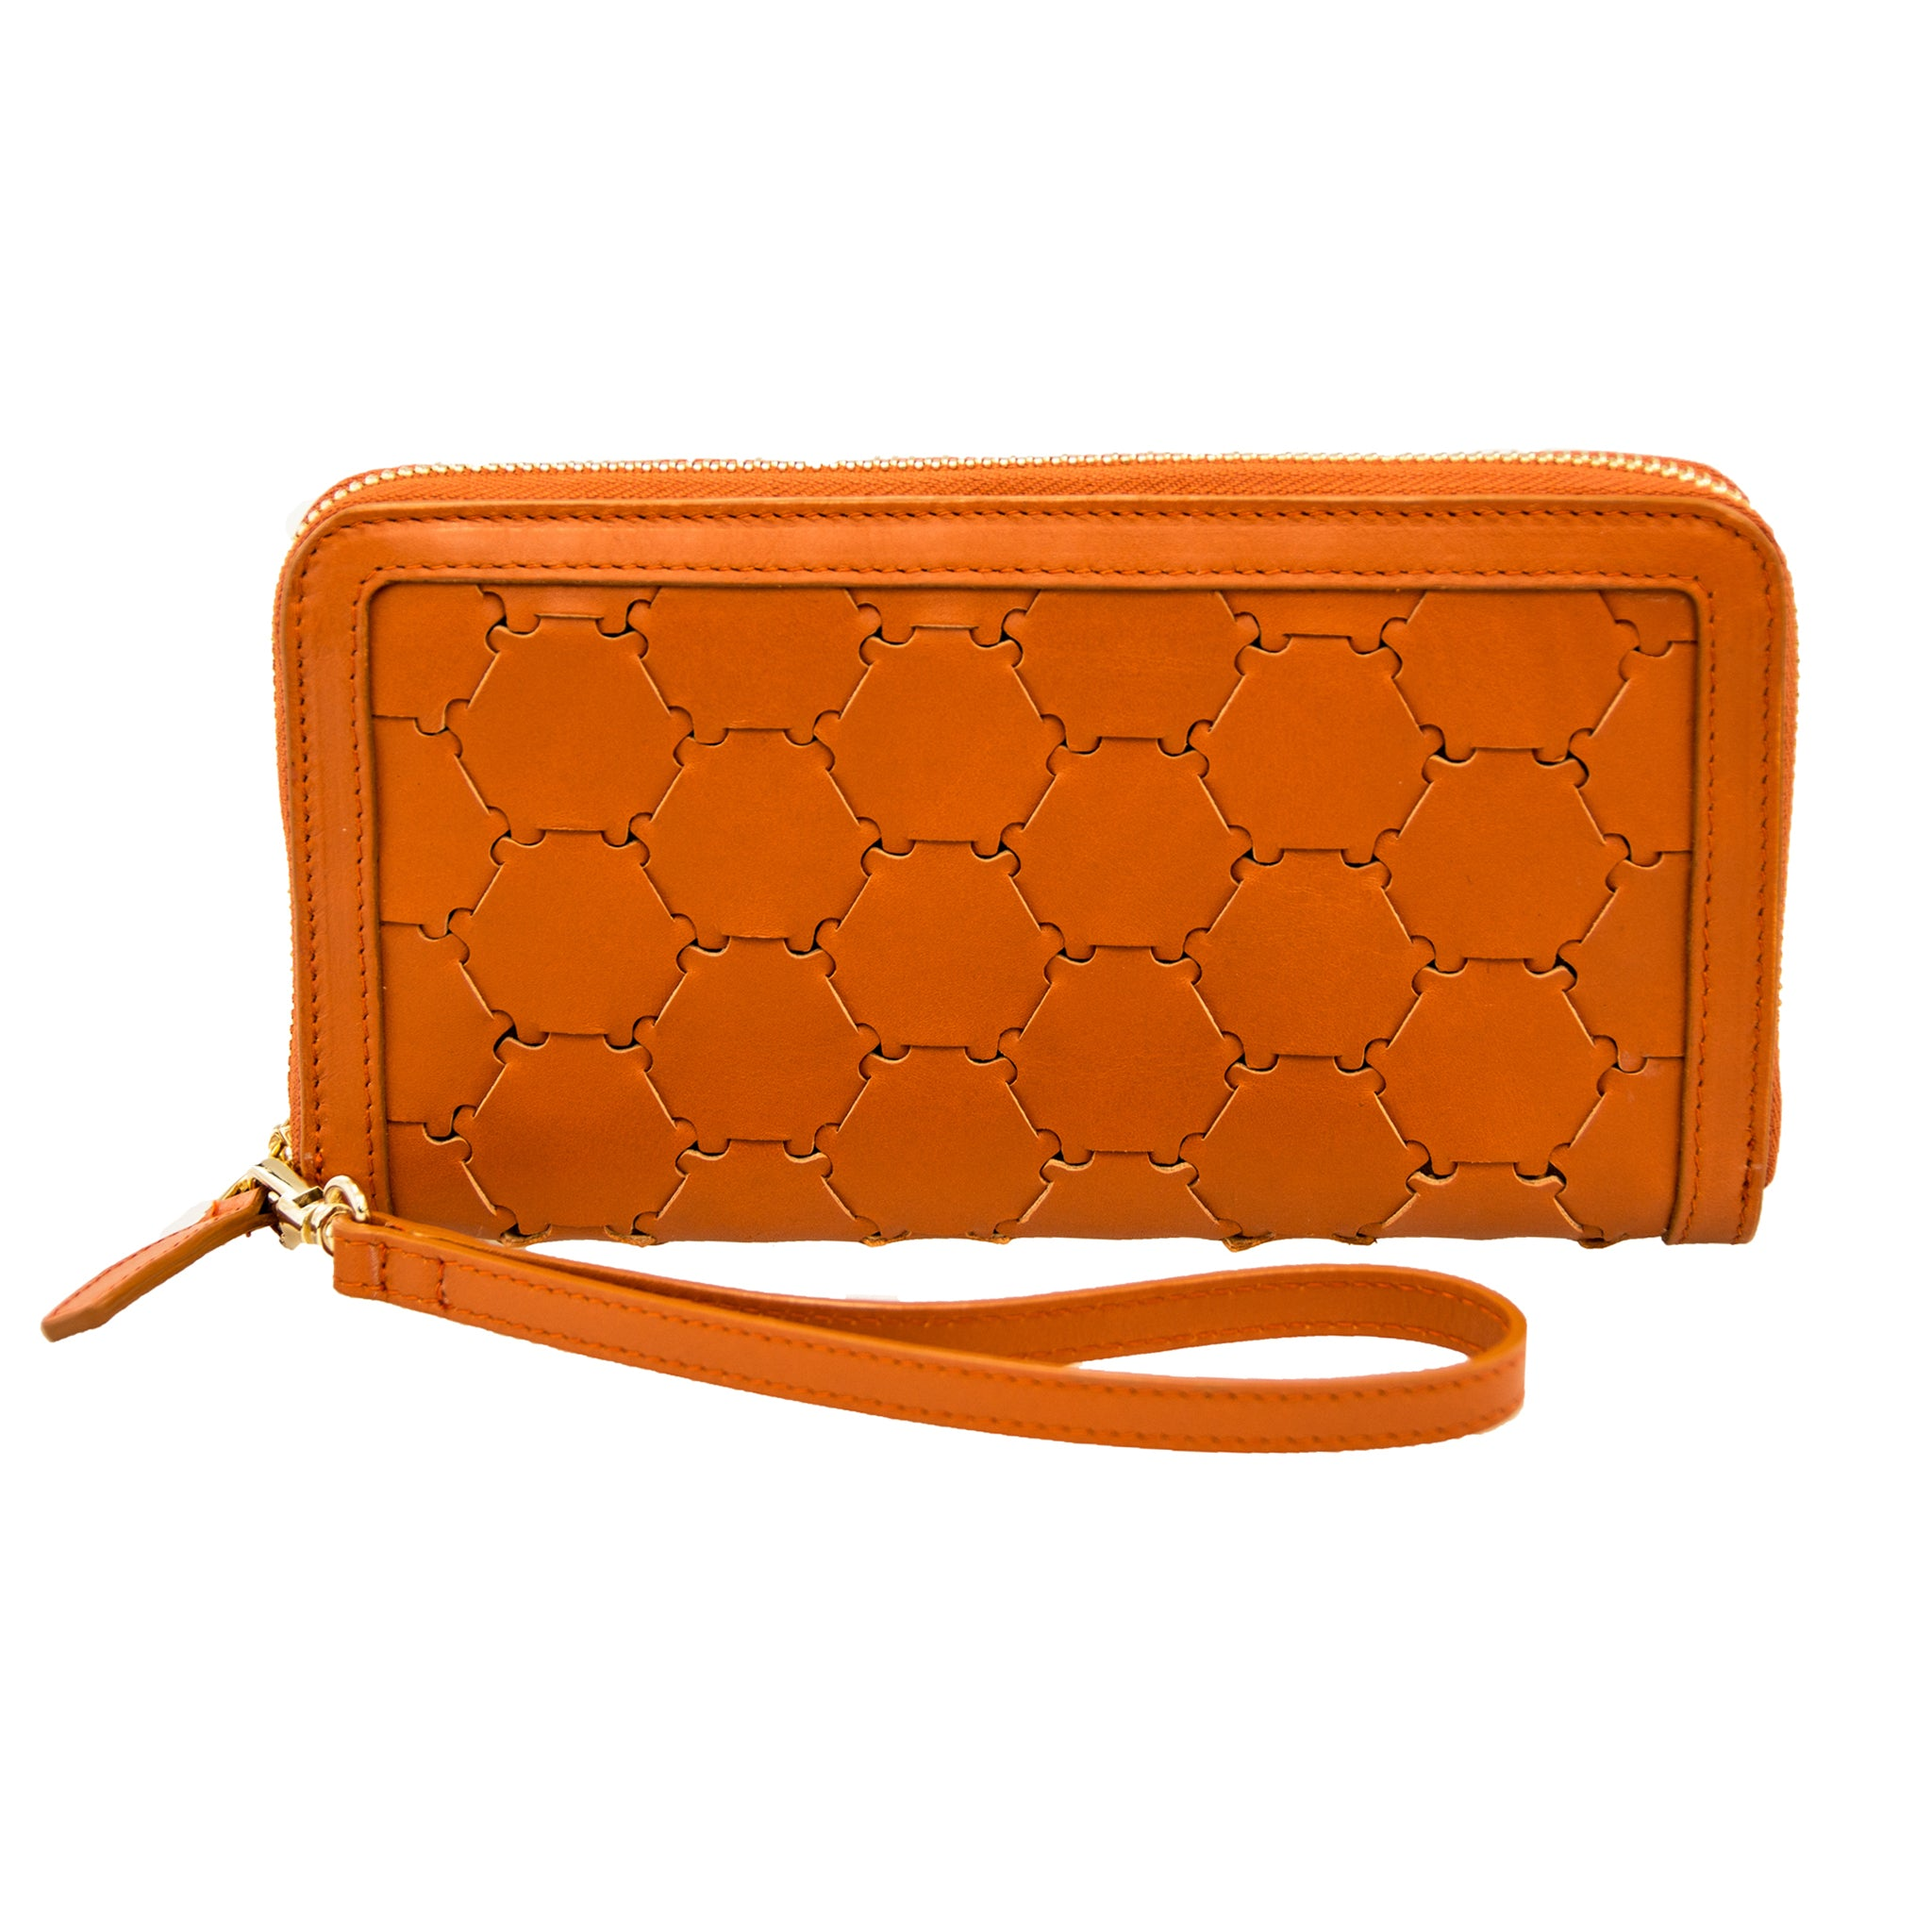 Woven Leather Wallet | Orange